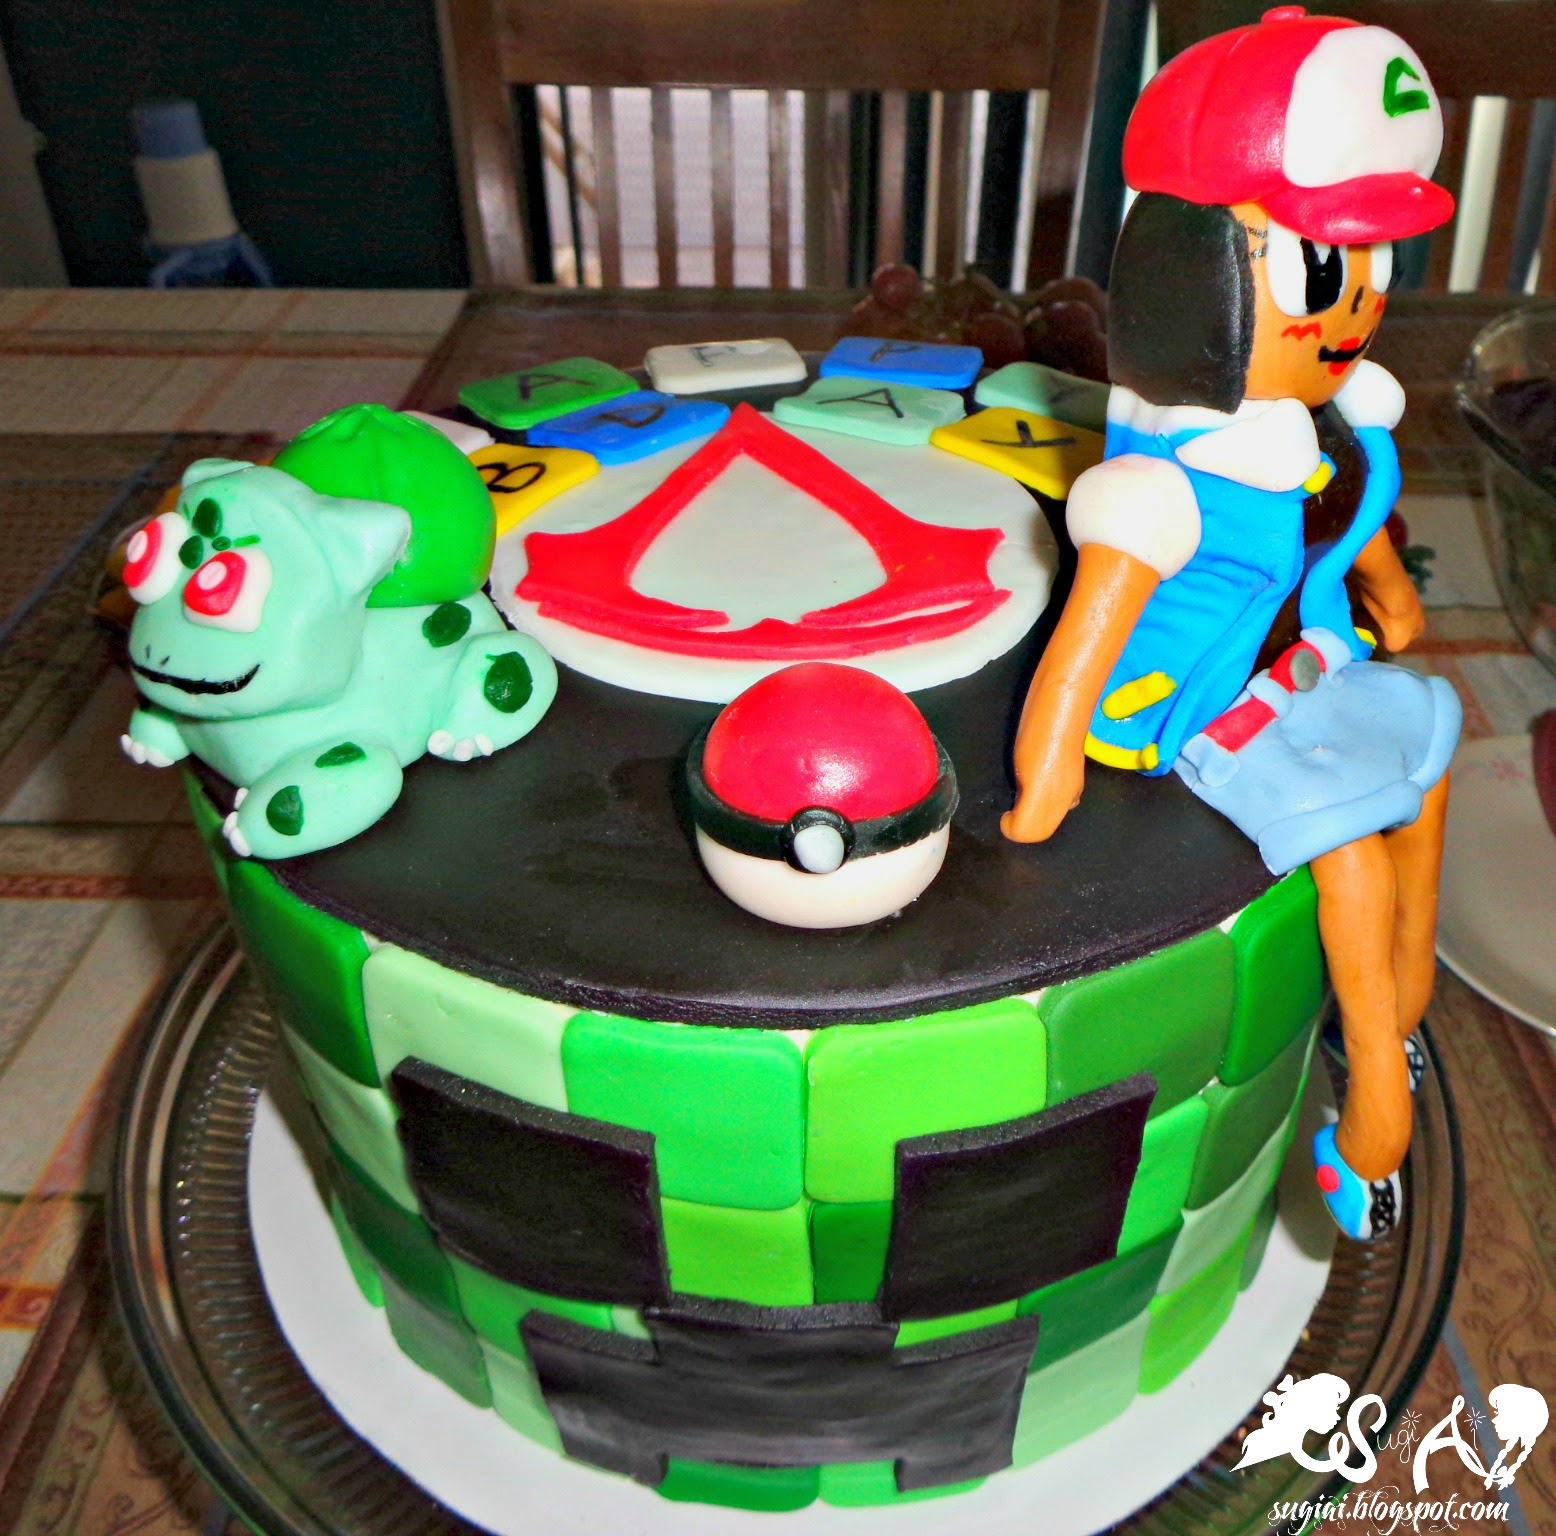 Happy St Patricks Day And A Video Game Birthday Cake